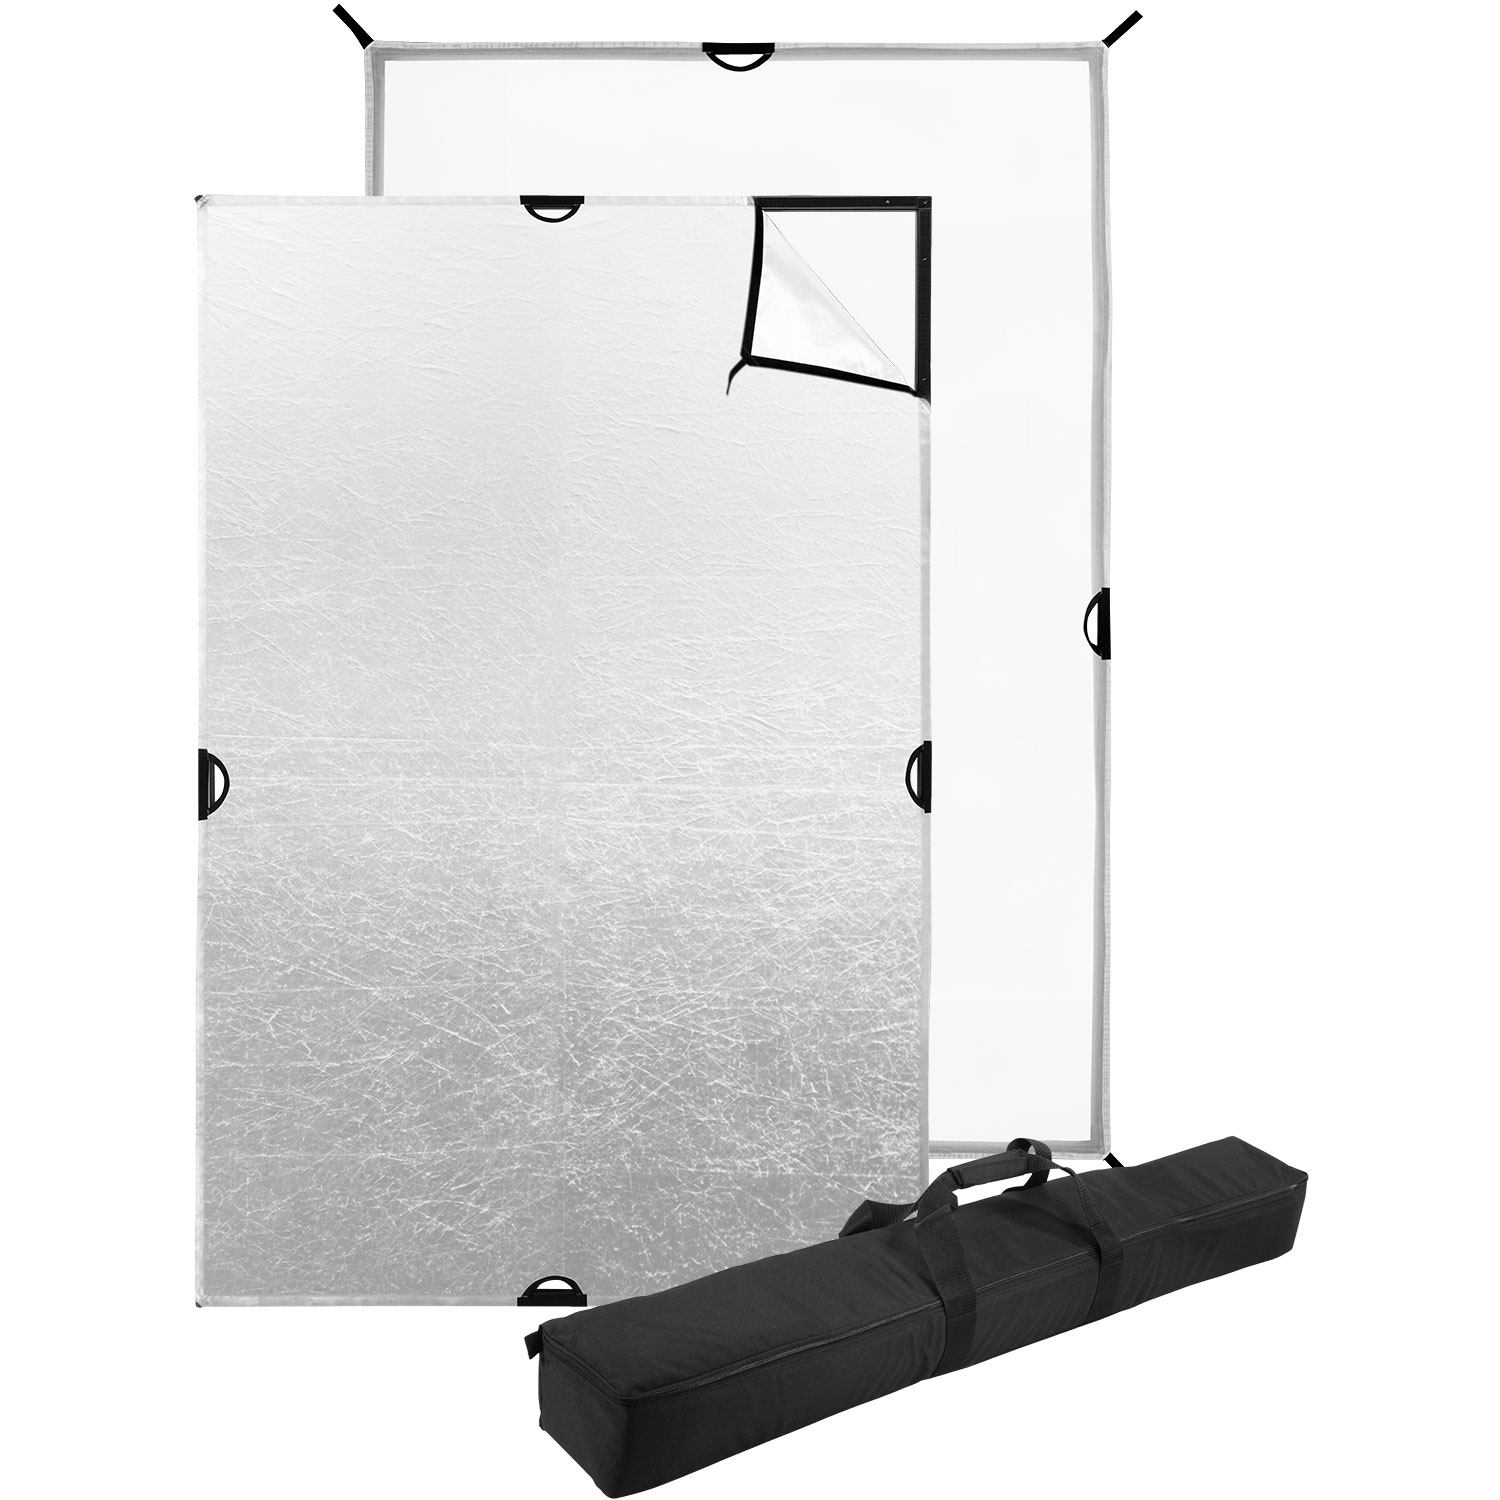 Scrim Jim Cine Kit (4' x 6')